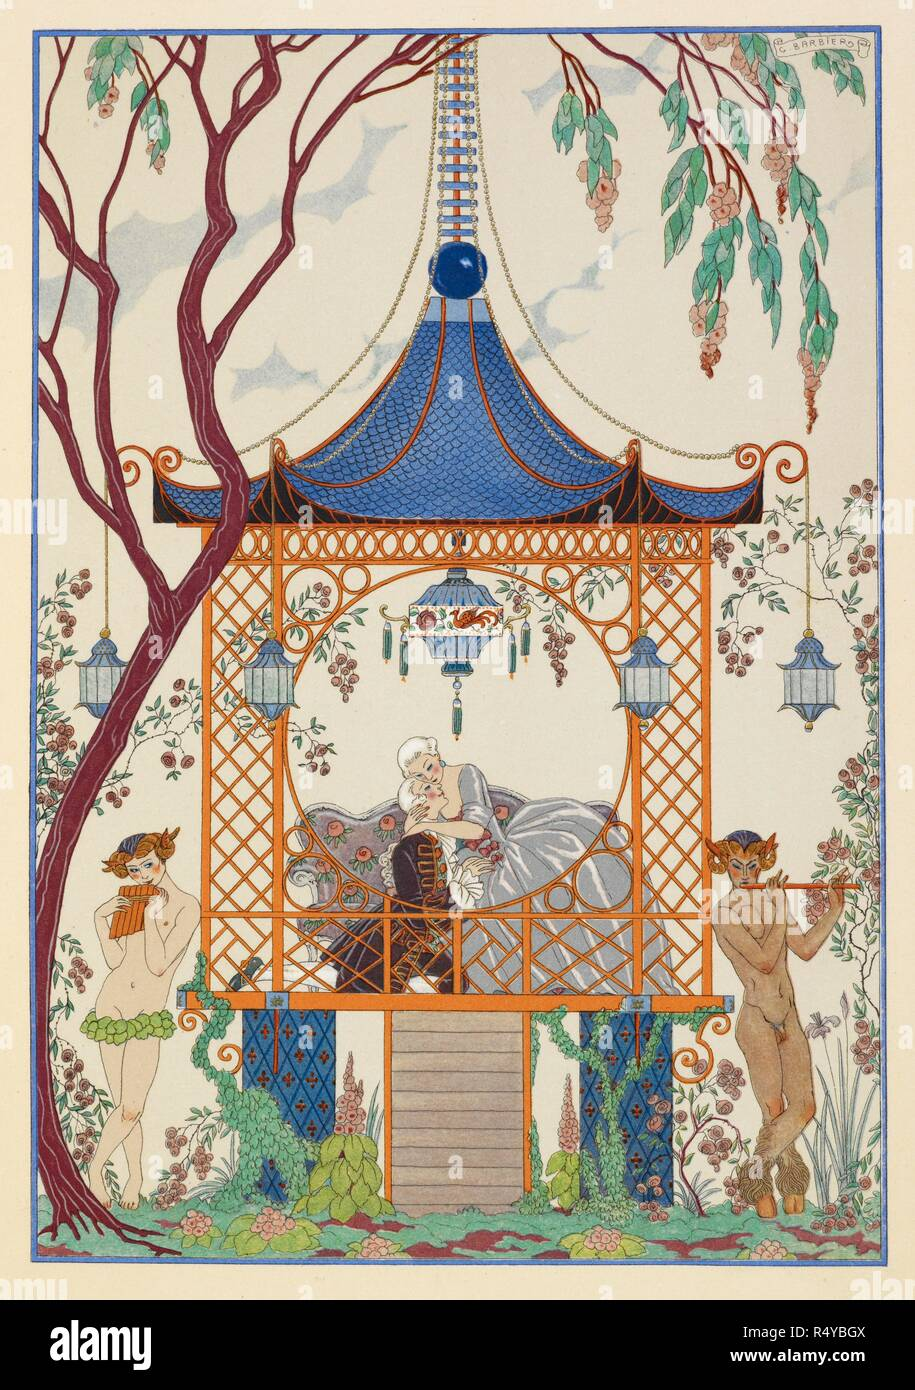 Cythère. A man and woman in a pavillion, embracing. Mythical creatures outside, playing pipes. Fêtes galantes. [Poèmes]. Illustrations de George Barbier. Paris: H. Piazza, 1928. Fêtes Galantes is an album consisting of romantic prints of French life among the upper classes of the 19th century. Rich aristocrats of the French court used to play gallant scenes from the commedia dell' arte that were called Fetes Galantes. The prints accompany Paul Verlaine's poetry. Each album contains 20 lithograph prints with pochoir highlighting by George Barbier. Source: L.45/2847, before page 51. Langua - Stock Image